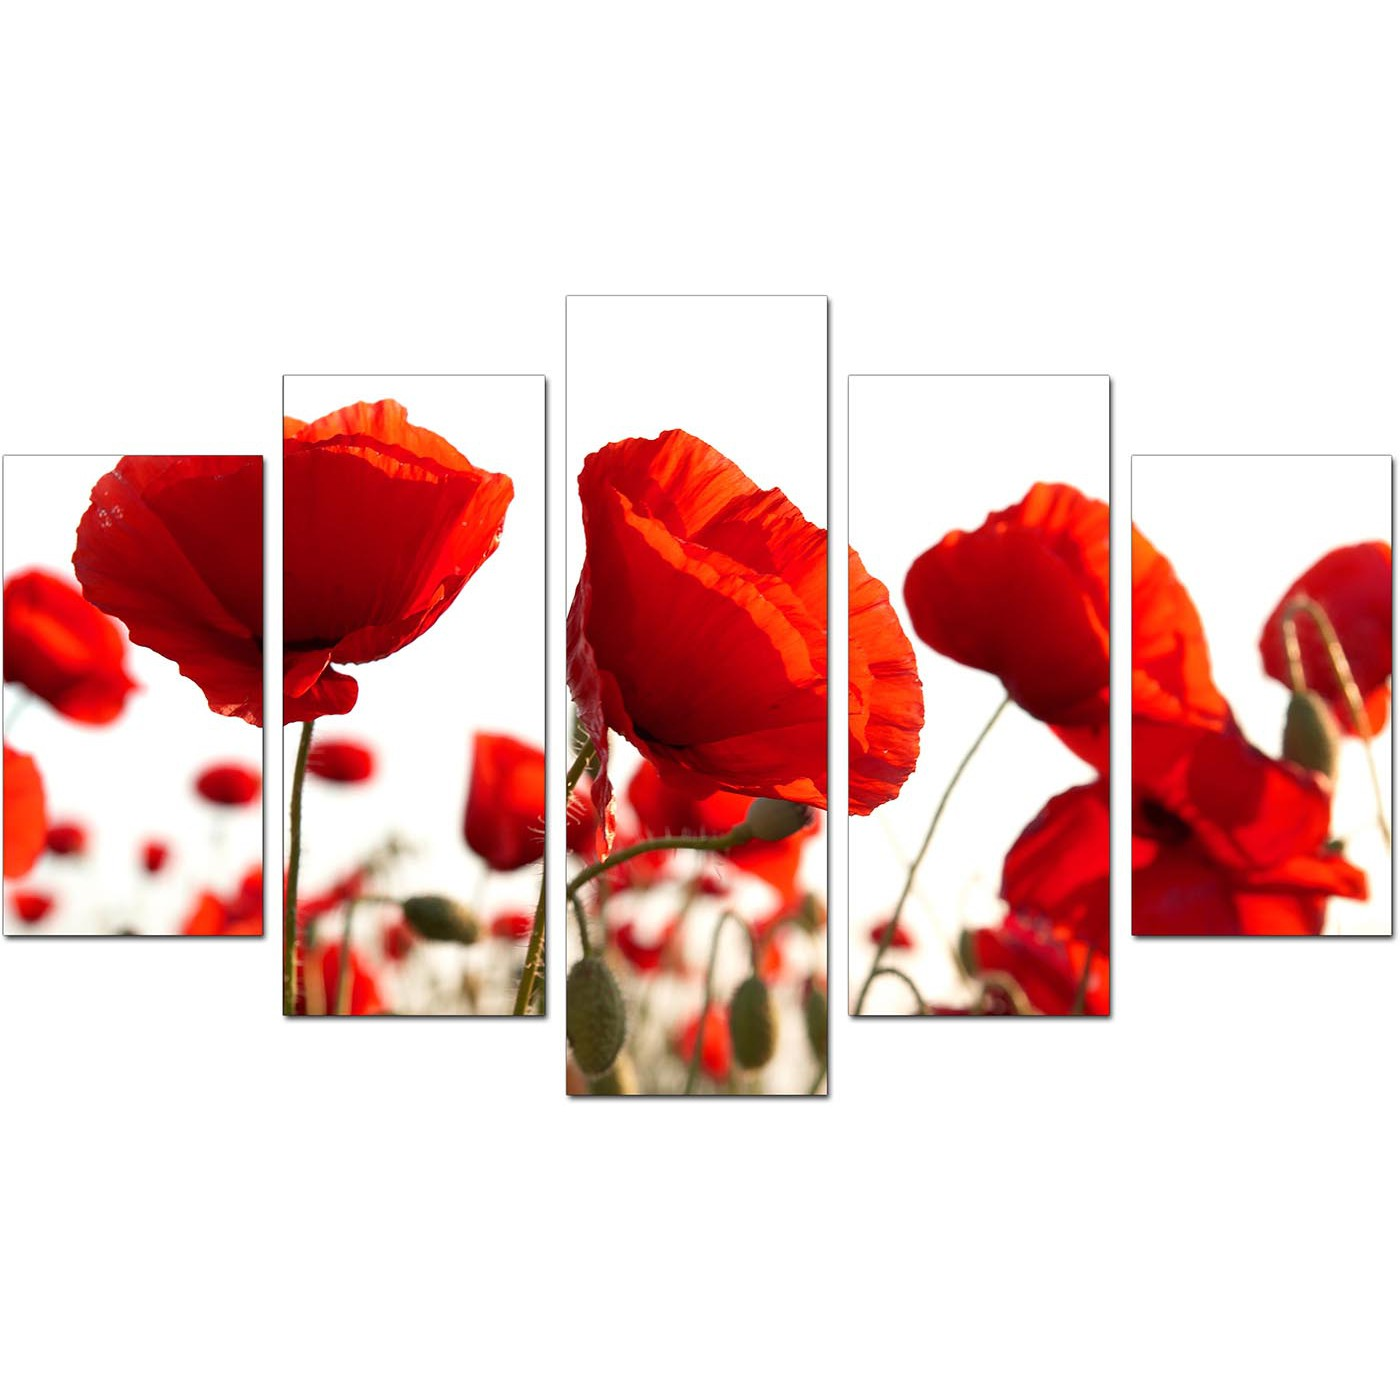 Extra large poppies canvas prints uk 5 part in red red living room five part set of poppies display gallery item 1 mightylinksfo